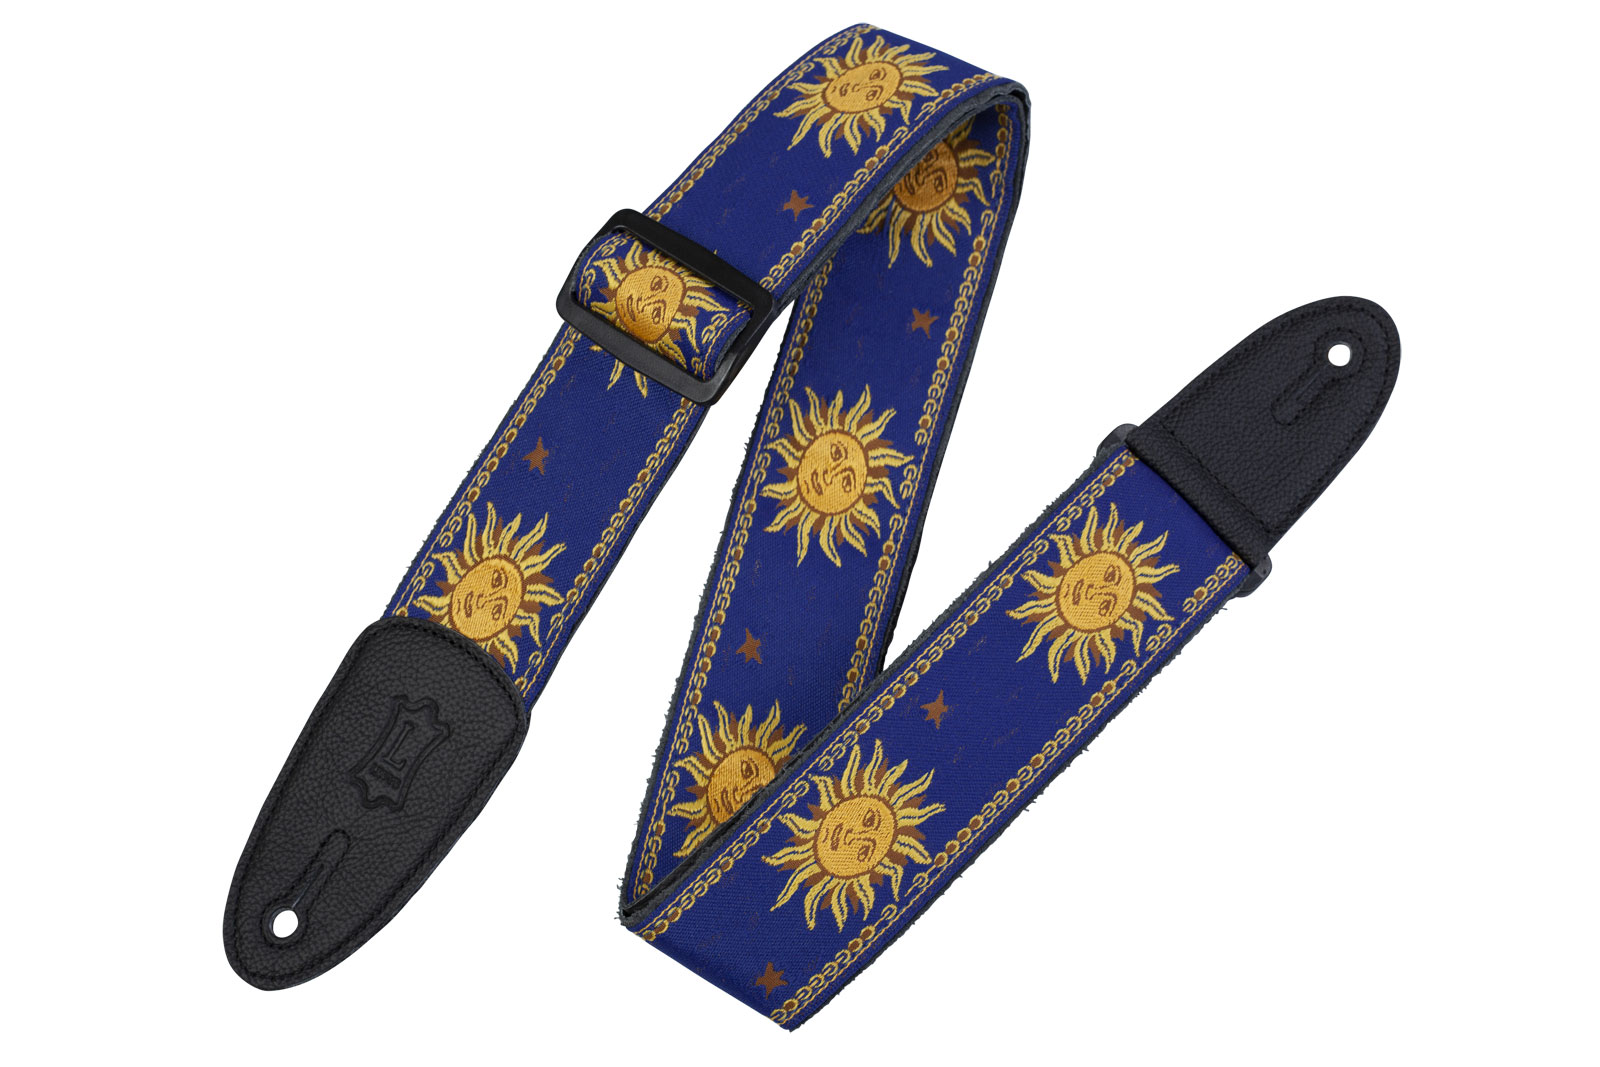 5 CM POLYPROPYLENE & LEATHER WITH BLUE SUN PATTERNS